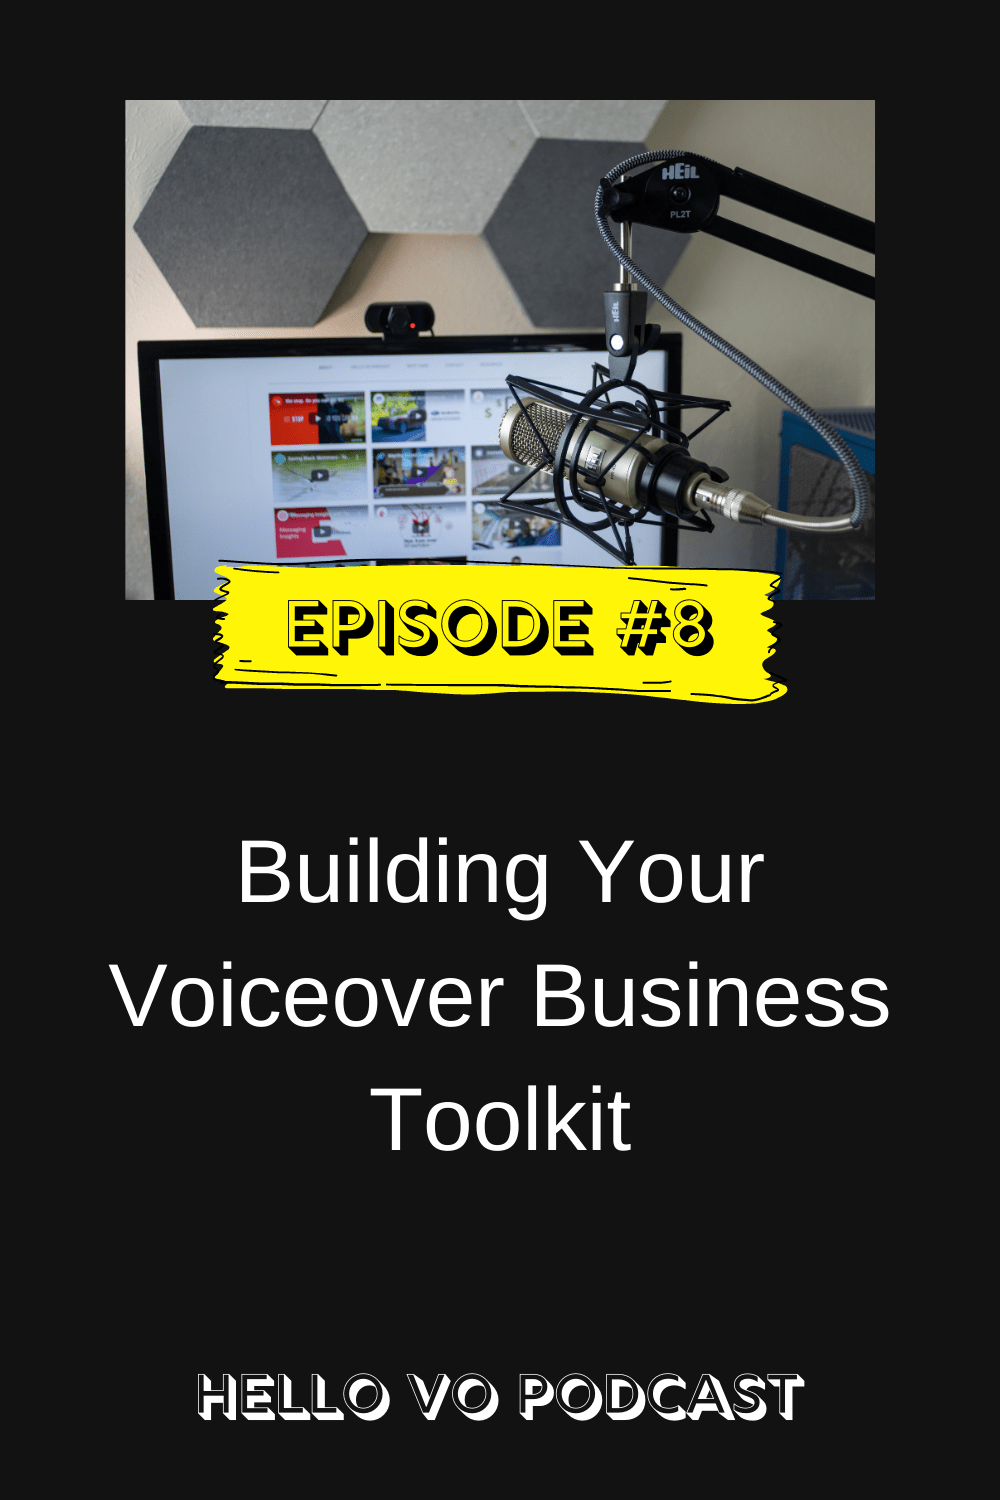 Hello VO episode 8 building your voiceover business toolkit